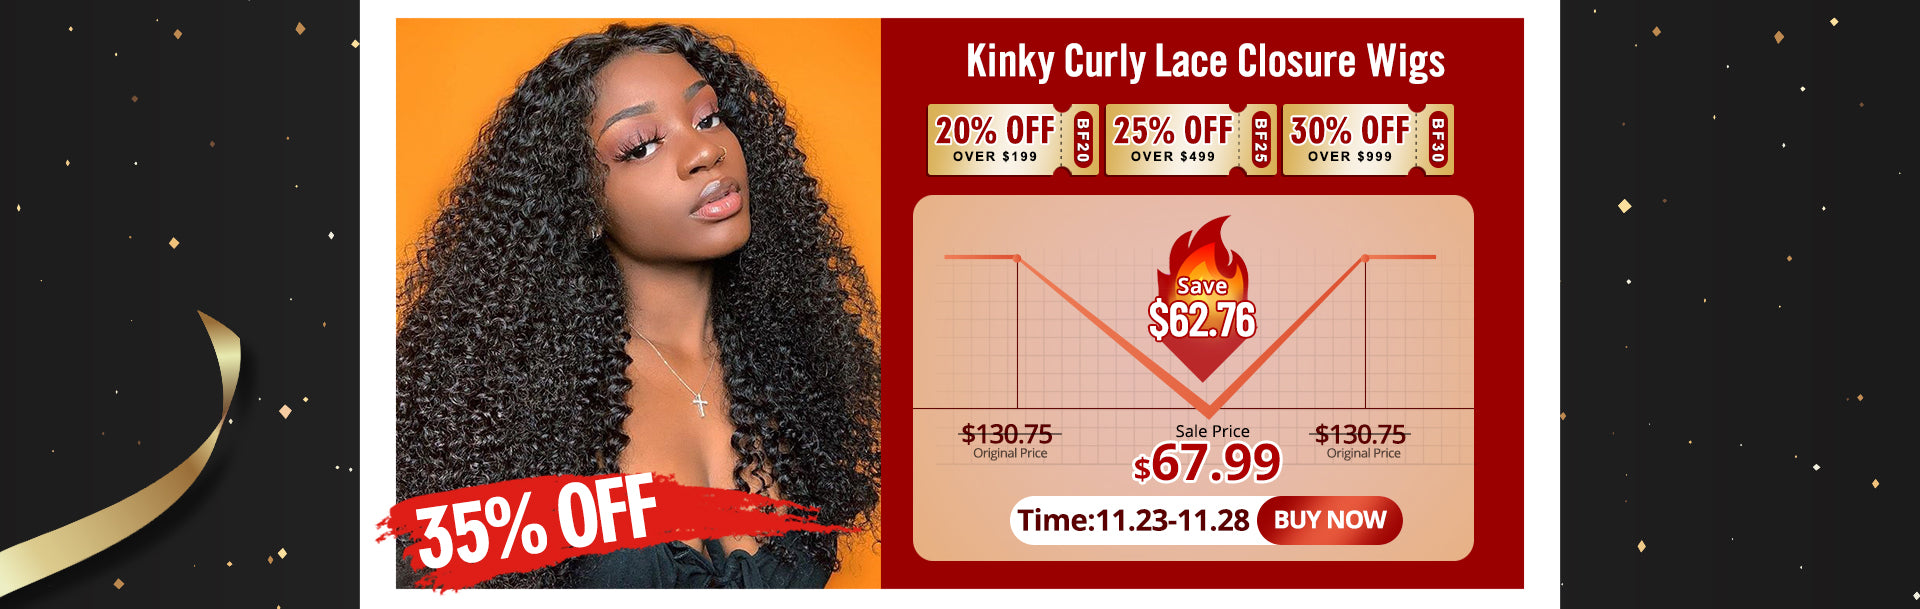 Kinky Curly Lace Closure Wigs